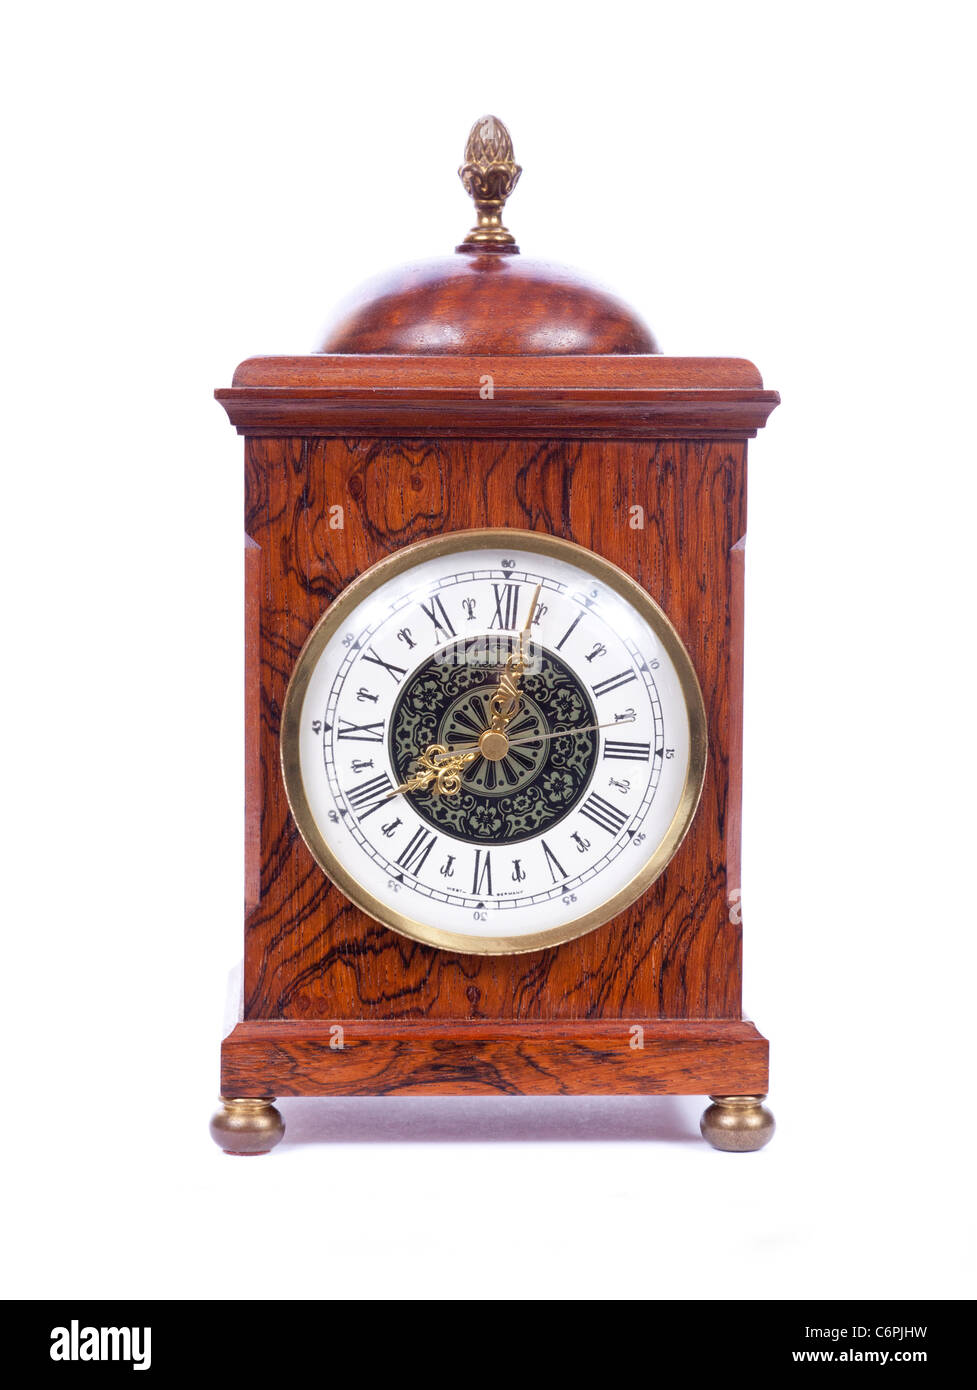 Mantel Clock Stock Photos Amp Mantel Clock Stock Images Alamy